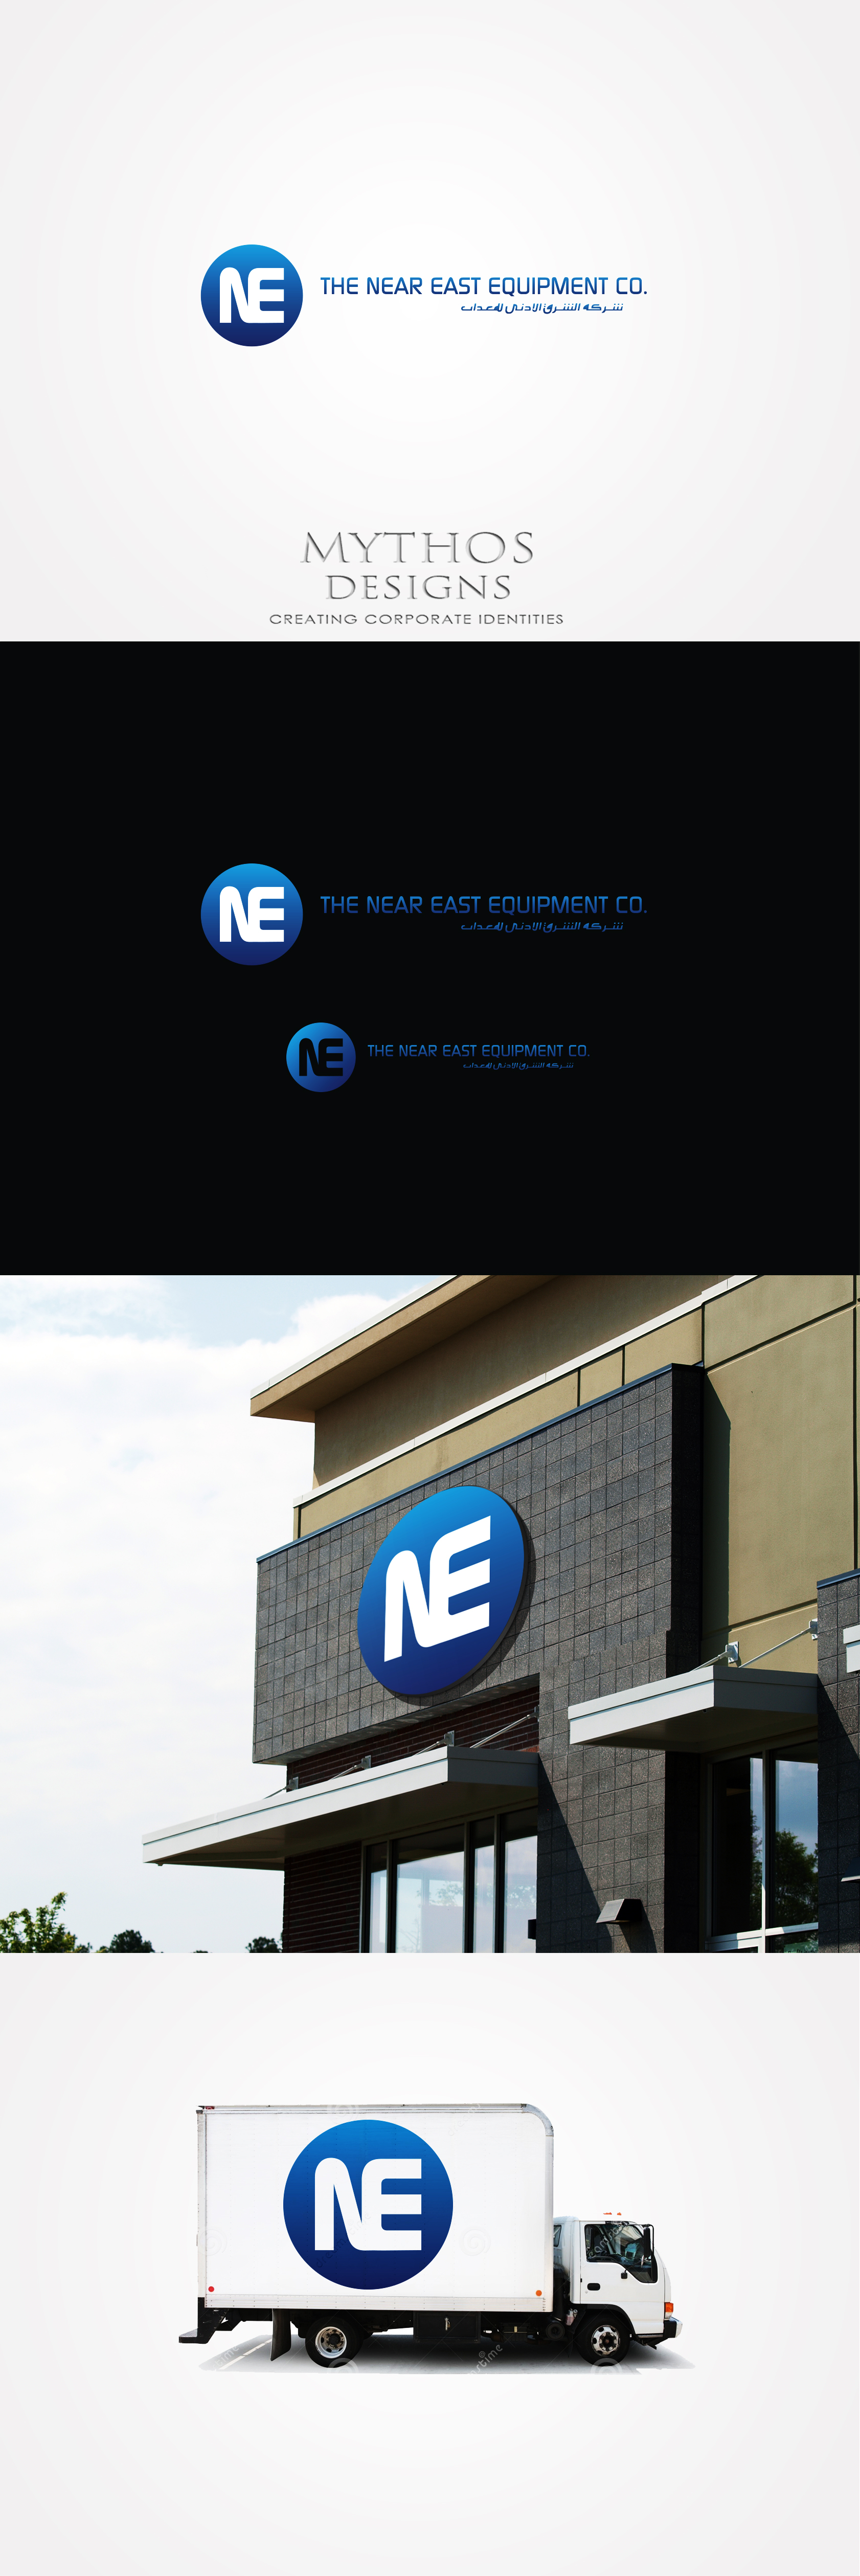 Logo Design by Mythos Designs - Entry No. 157 in the Logo Design Contest Imaginative Logo Design for The Near East Equipment Co..